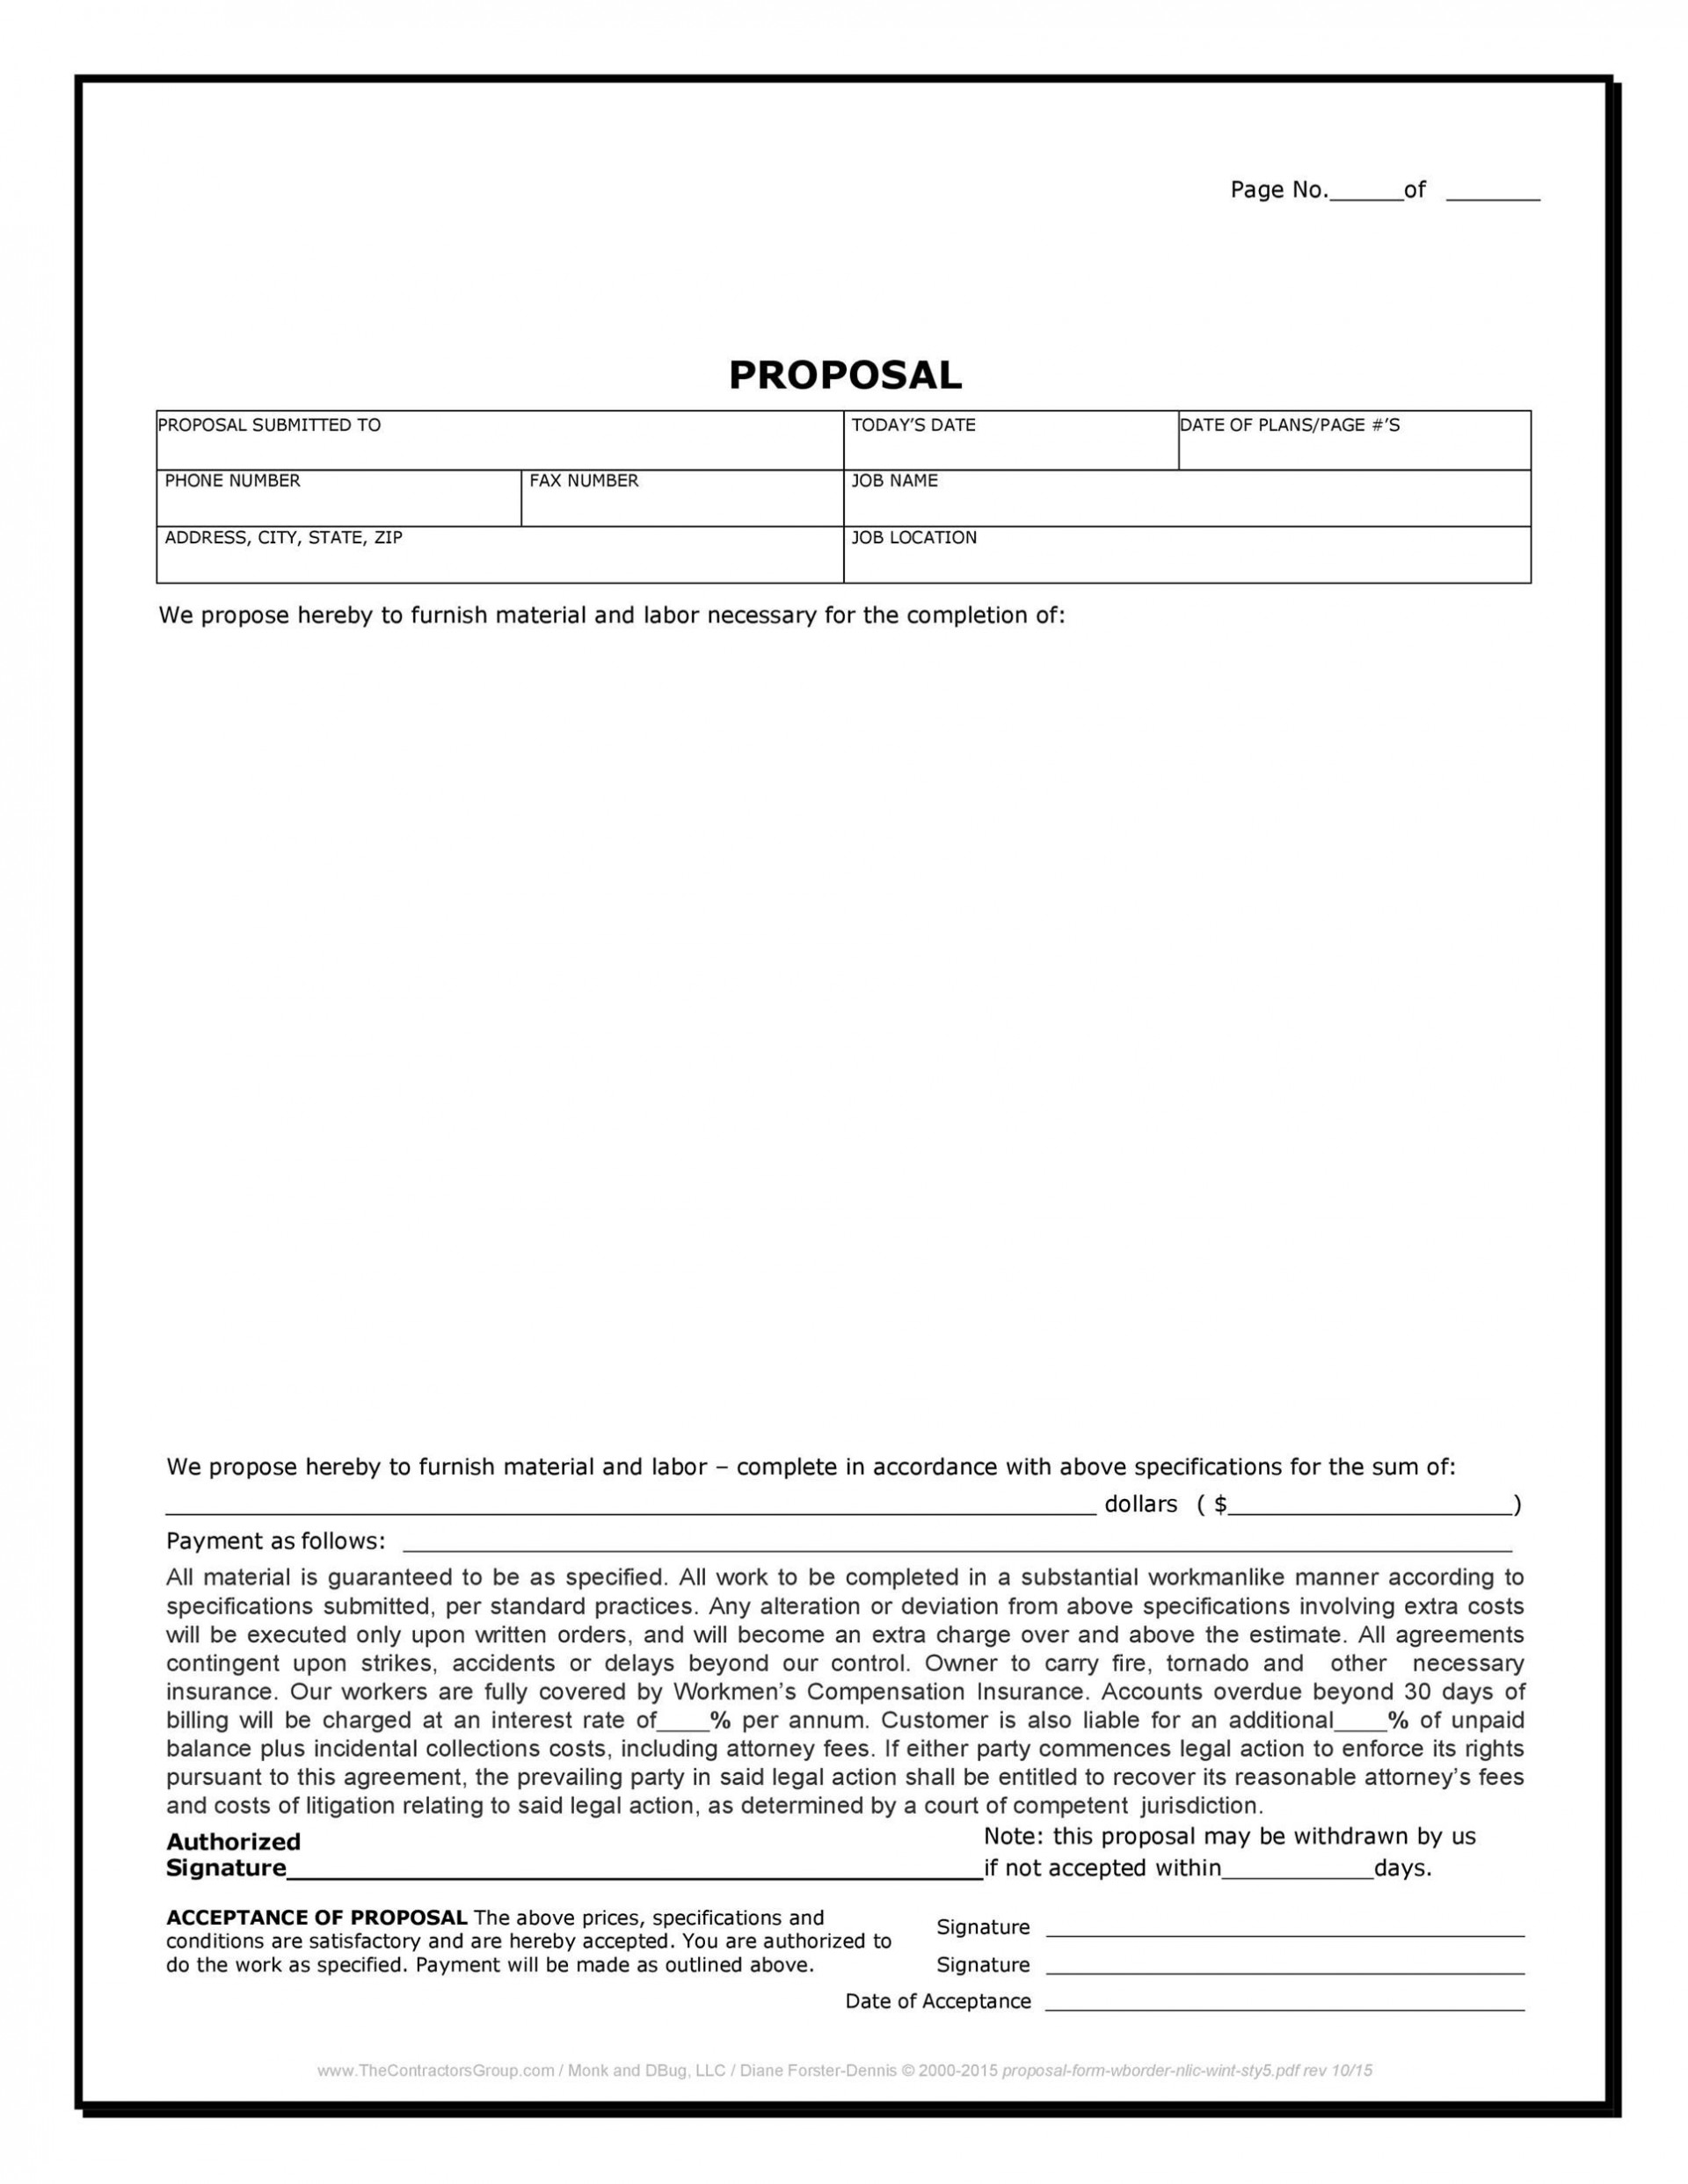 007 Awful Free Construction Proposal Template Idea  Bid Contractor Word1920